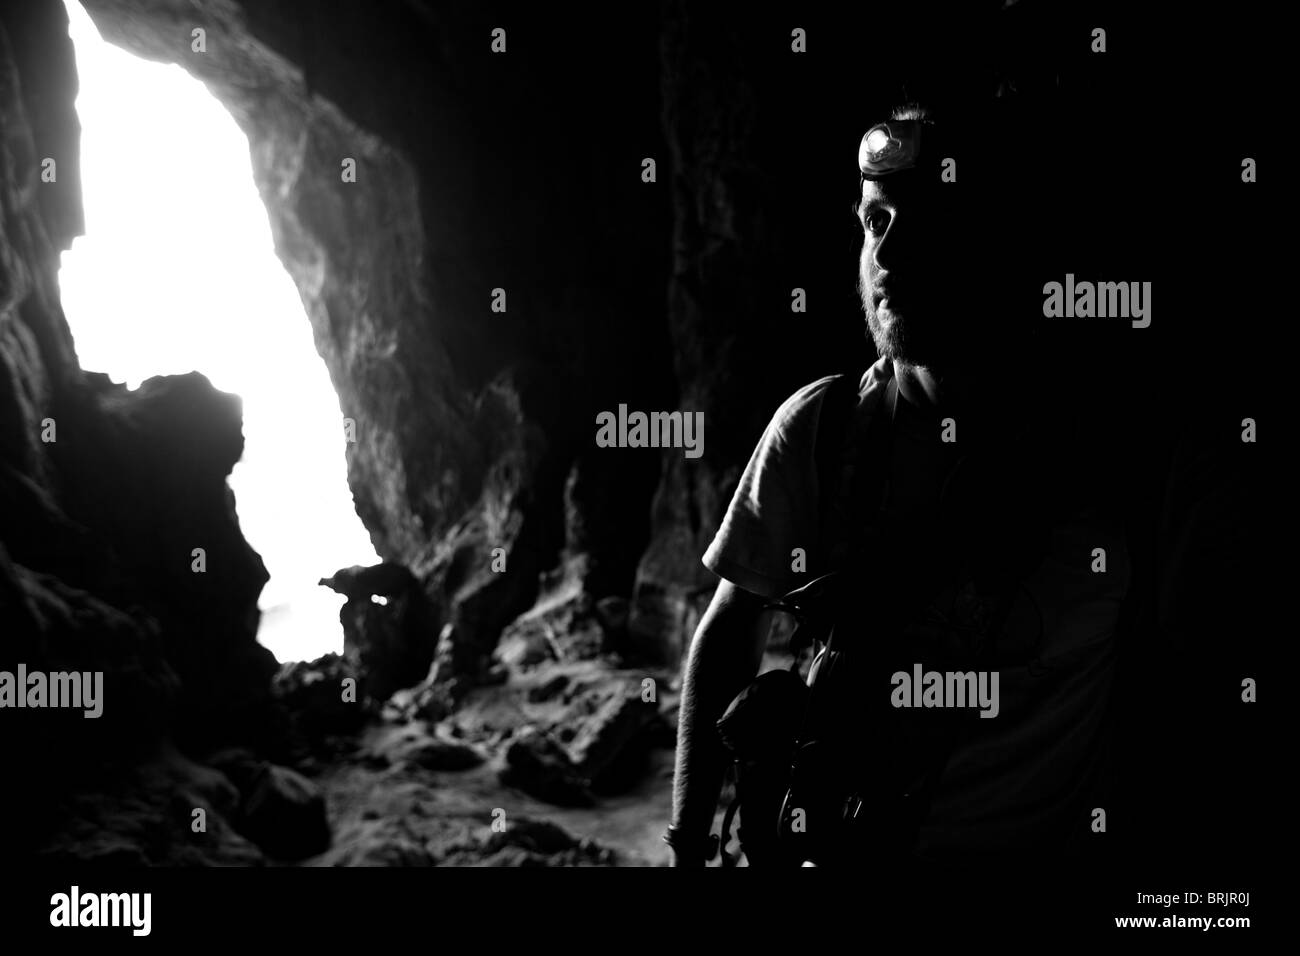 Bearded male explores a limestone cave with his headlamp. - Stock Image